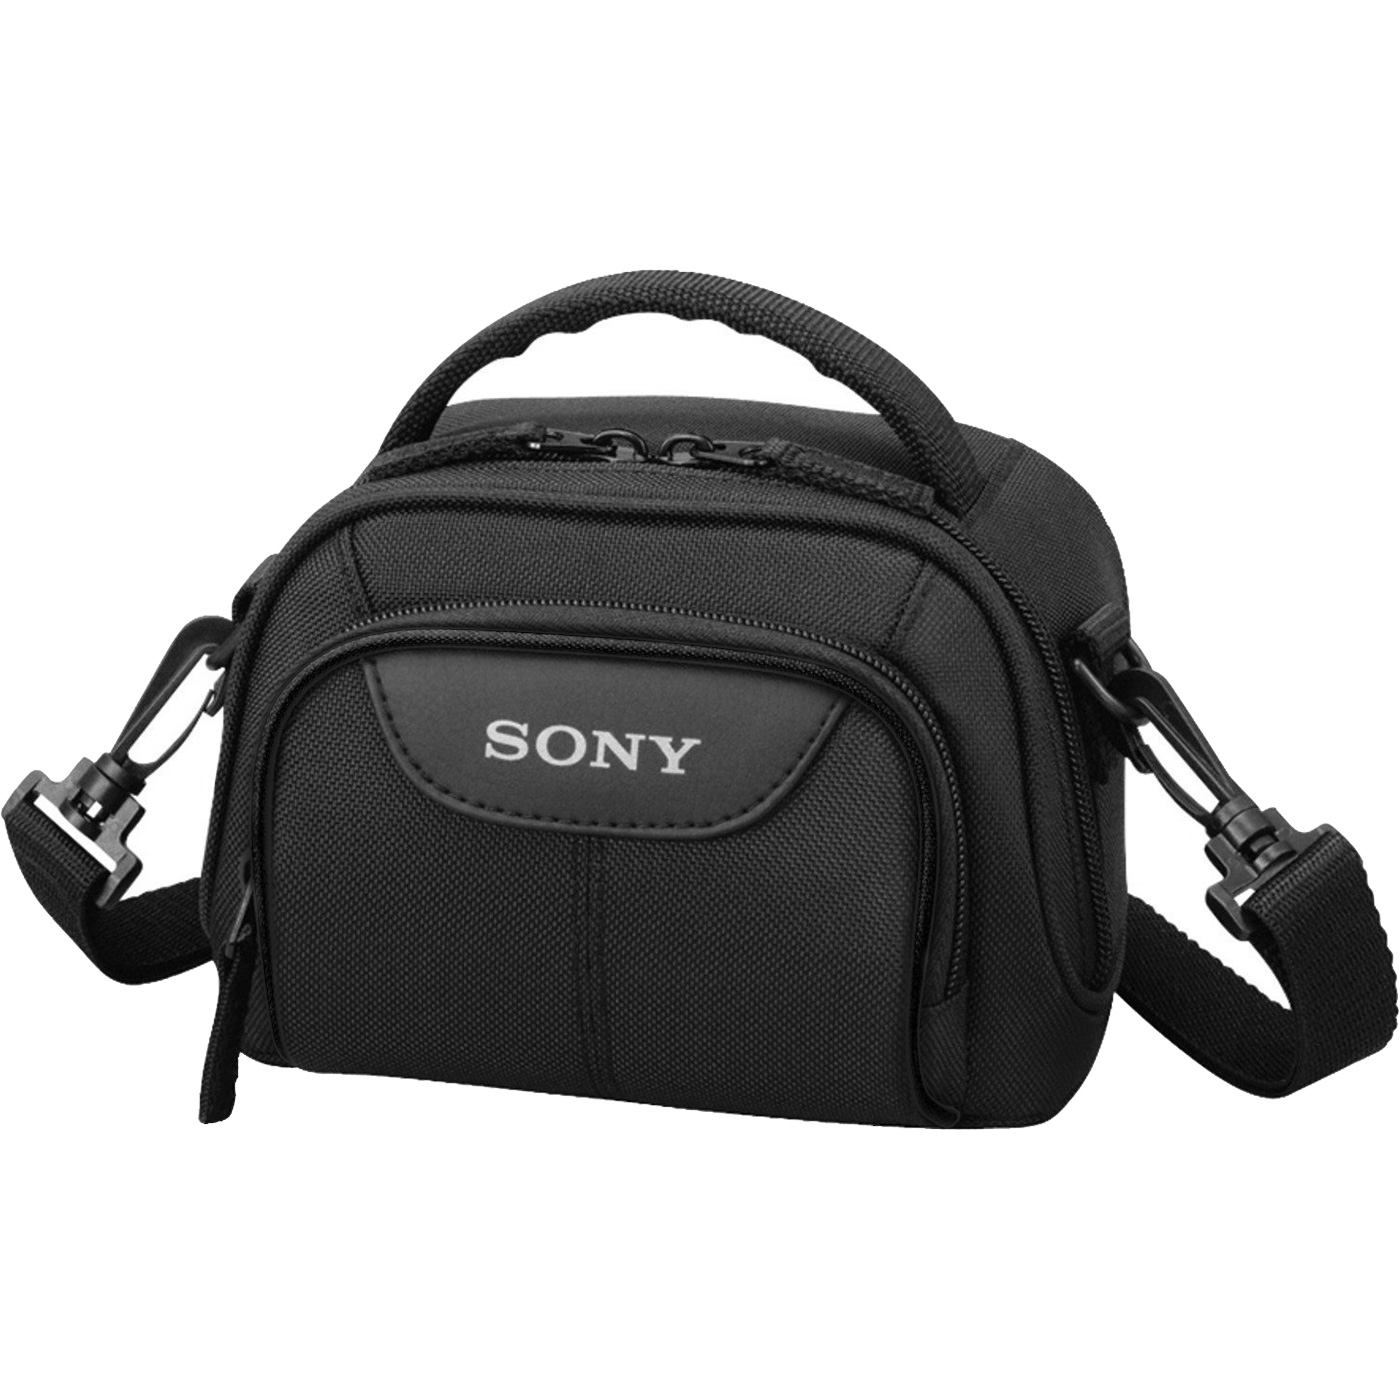 Sony Camcorder Bag, Black